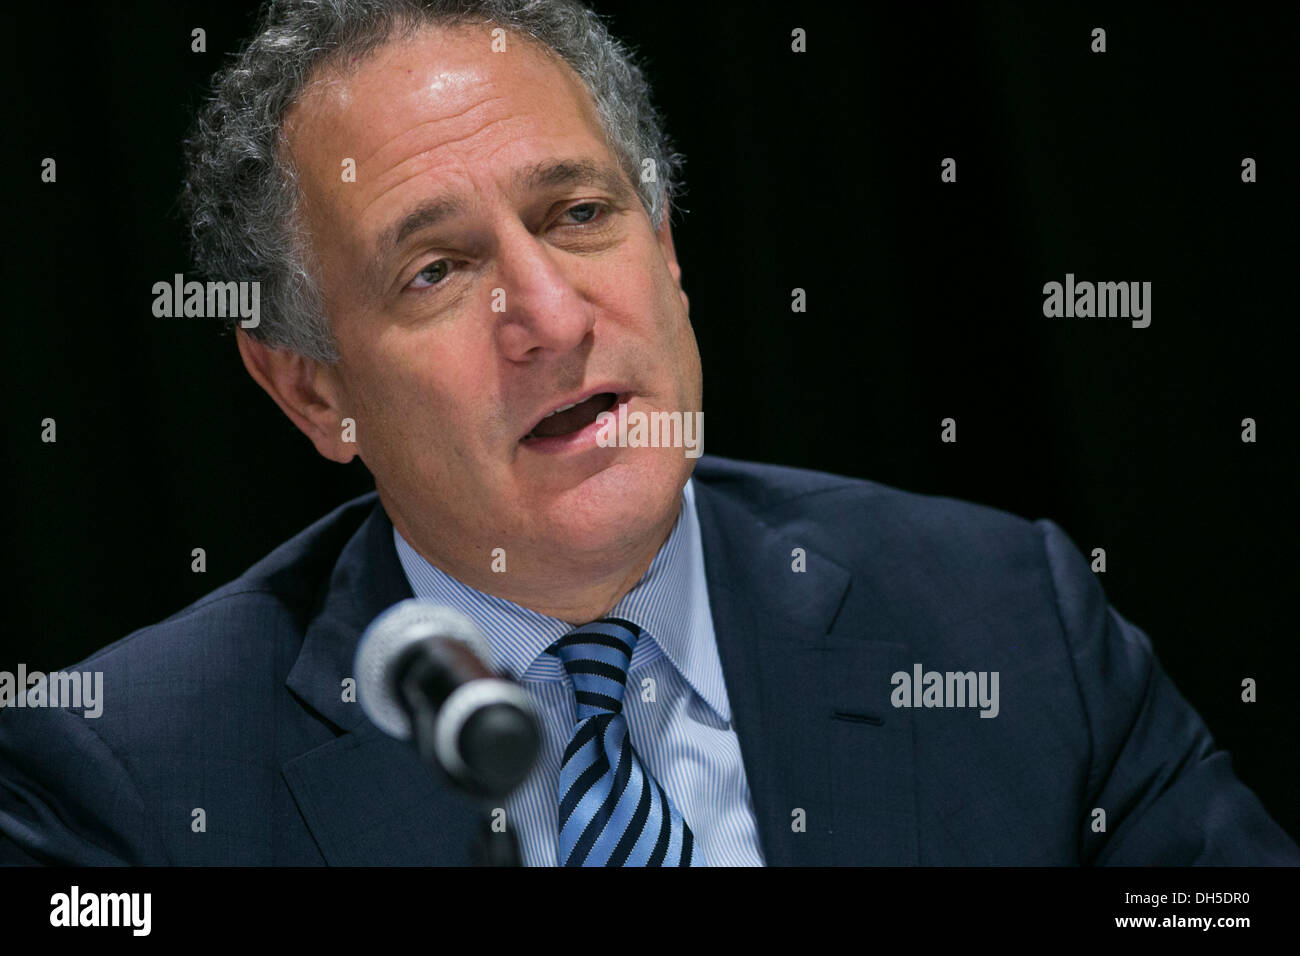 Dan Doctoroff, CEO of Bloomberg L.P. - Stock Image